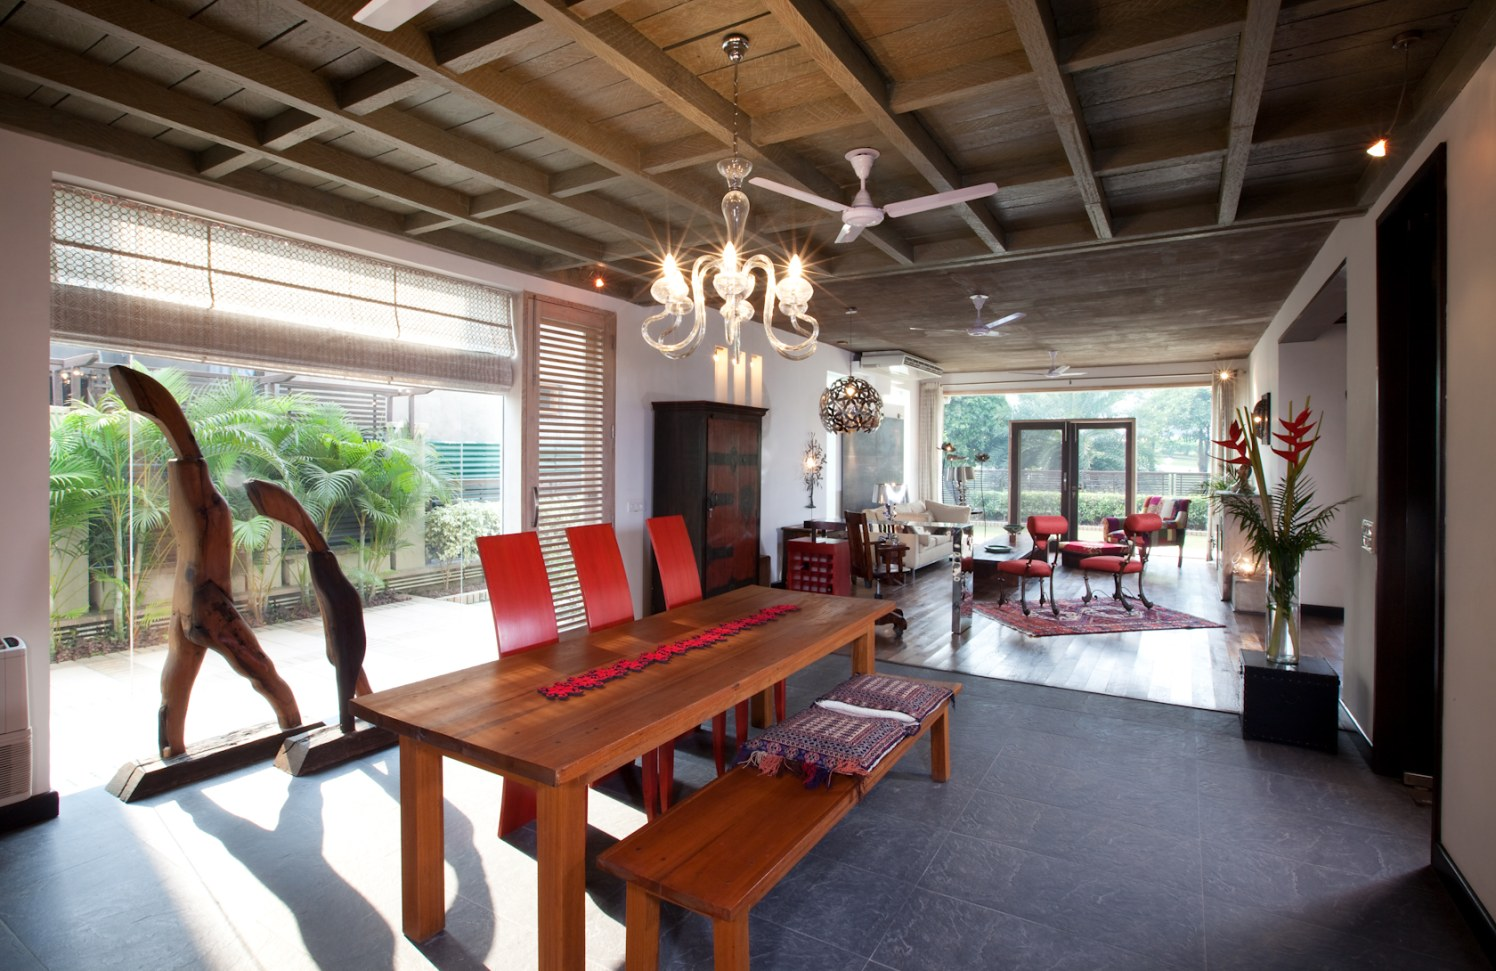 Dining room With Wooden Table And Red Chairs by narayan moorthy Dining-room Contemporary | Interior Design Photos & Ideas